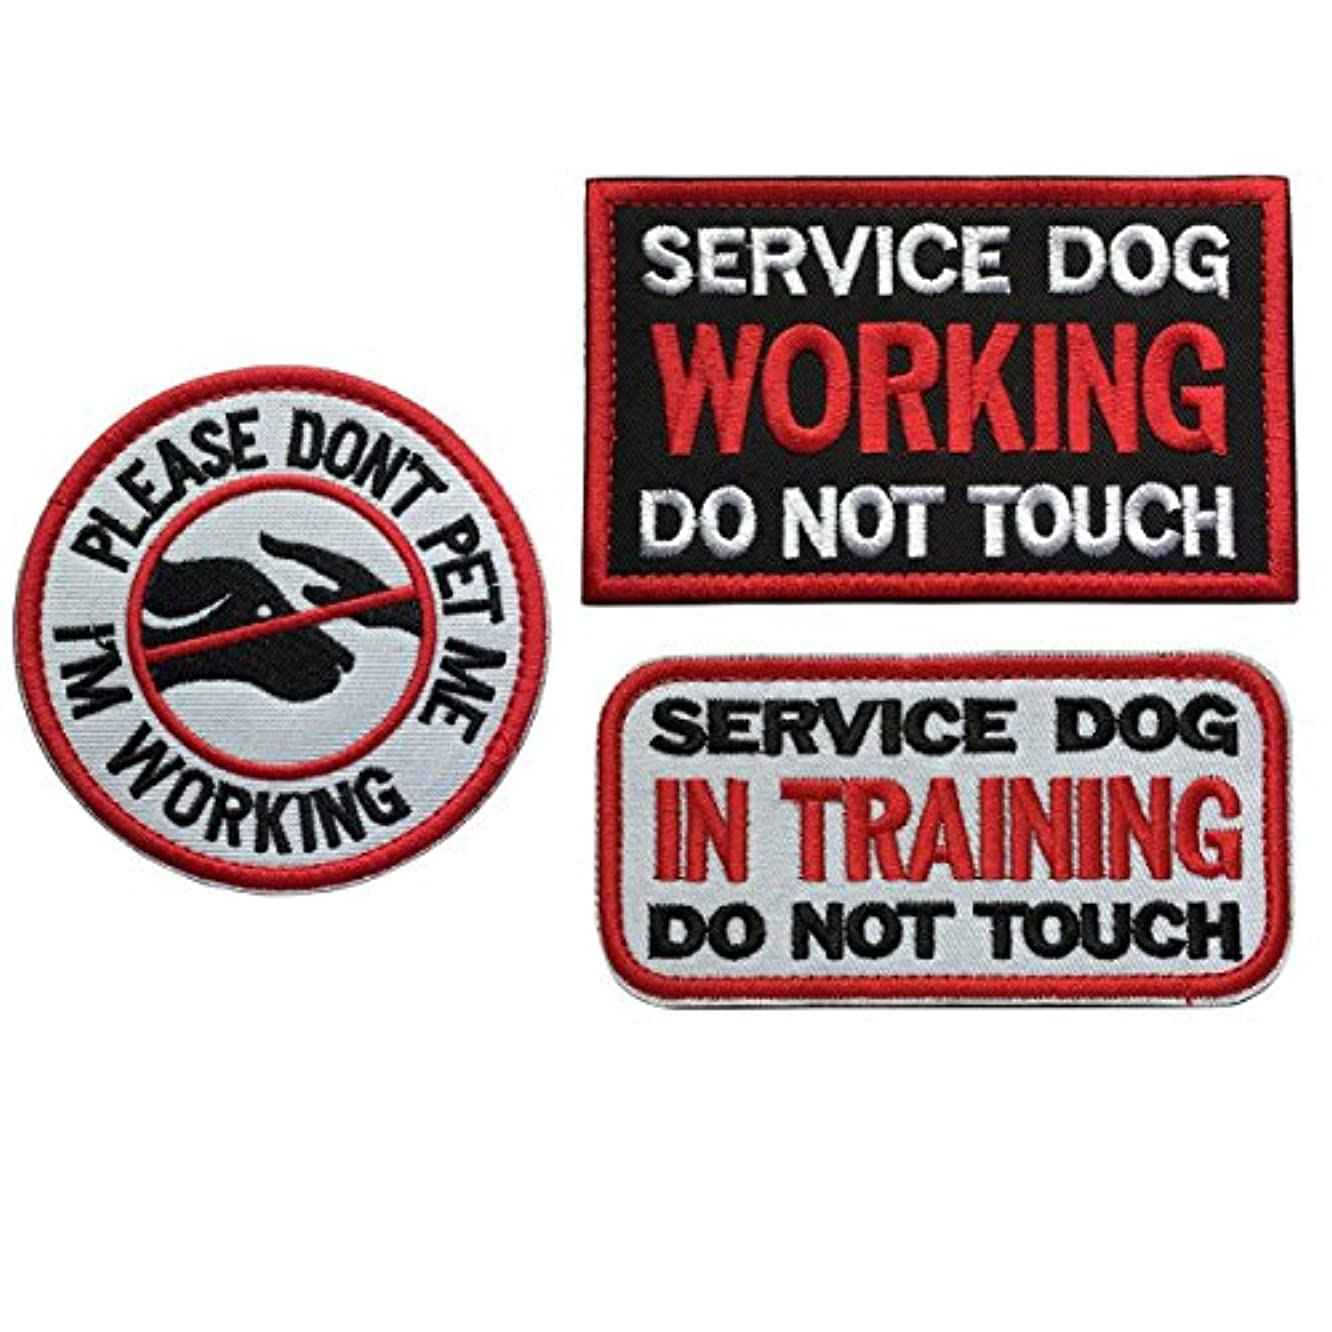 Homiego Military Morale Service Dog Patch for Pet Tactical K9 Service Harness Vest